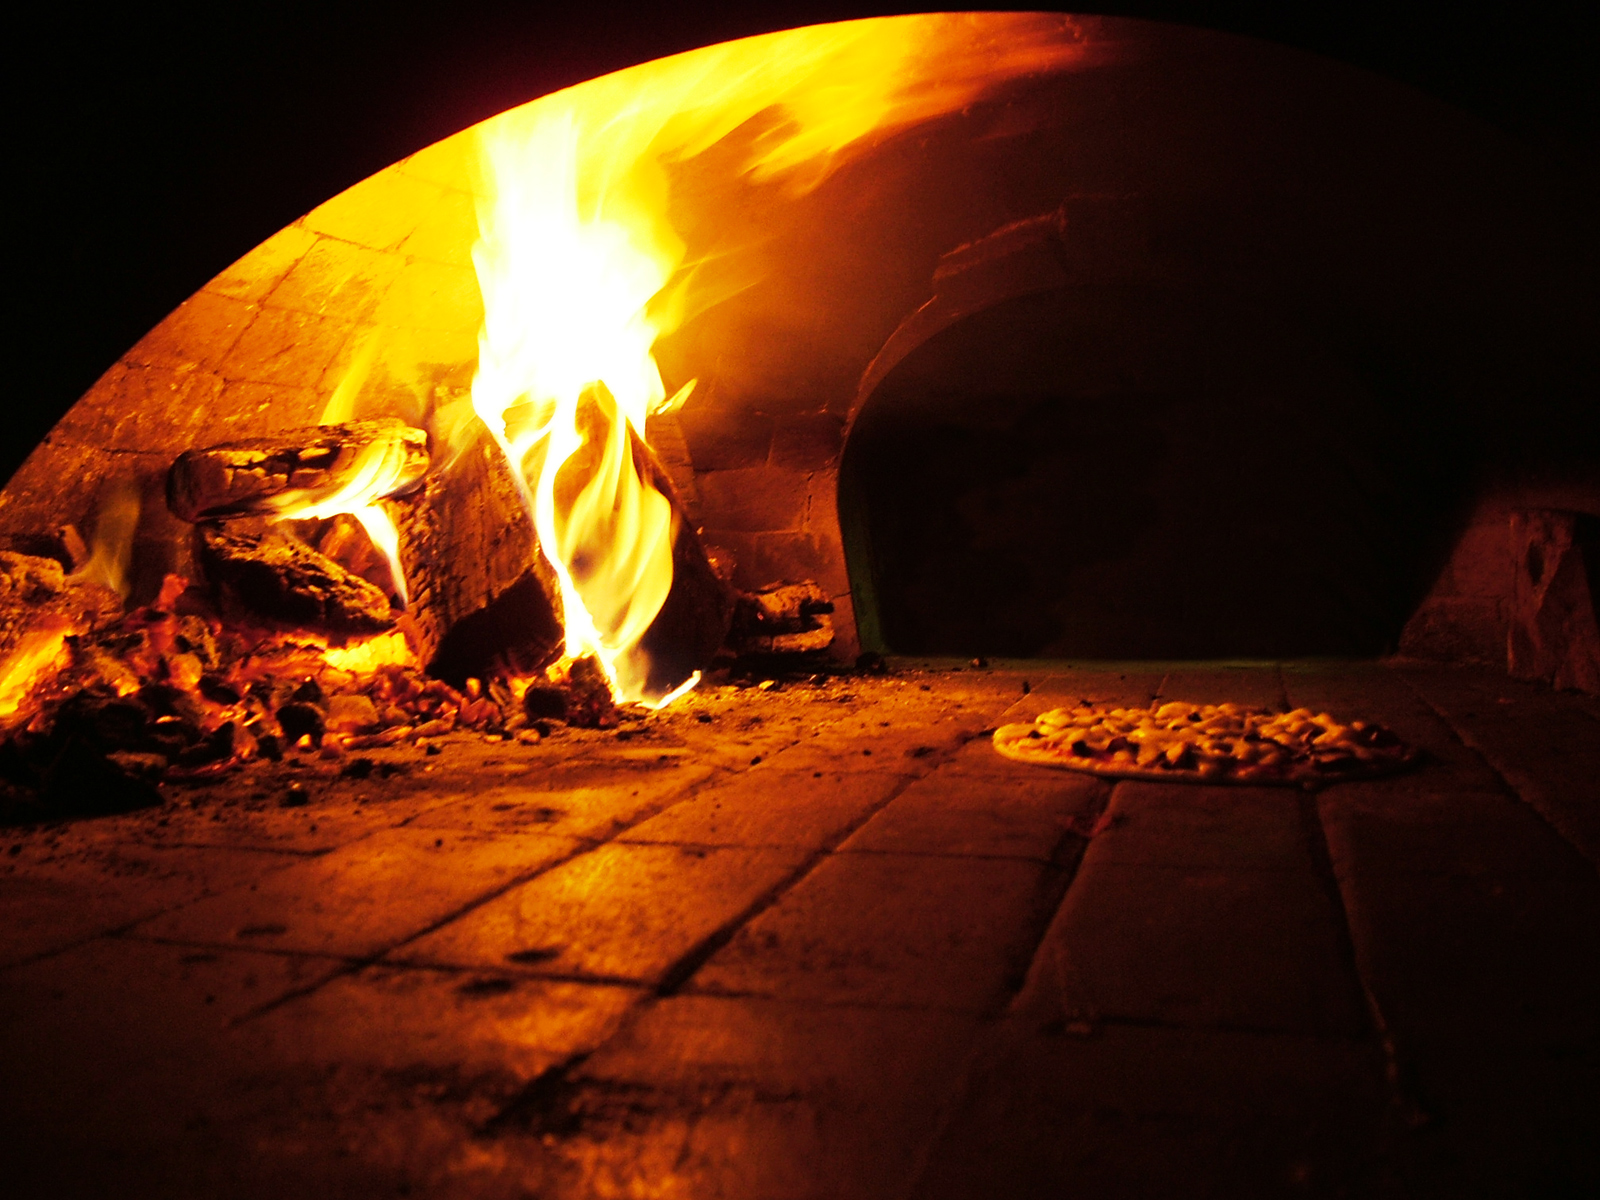 Are Utahs Wood fired Pizza Concepts Endangered Marketplace